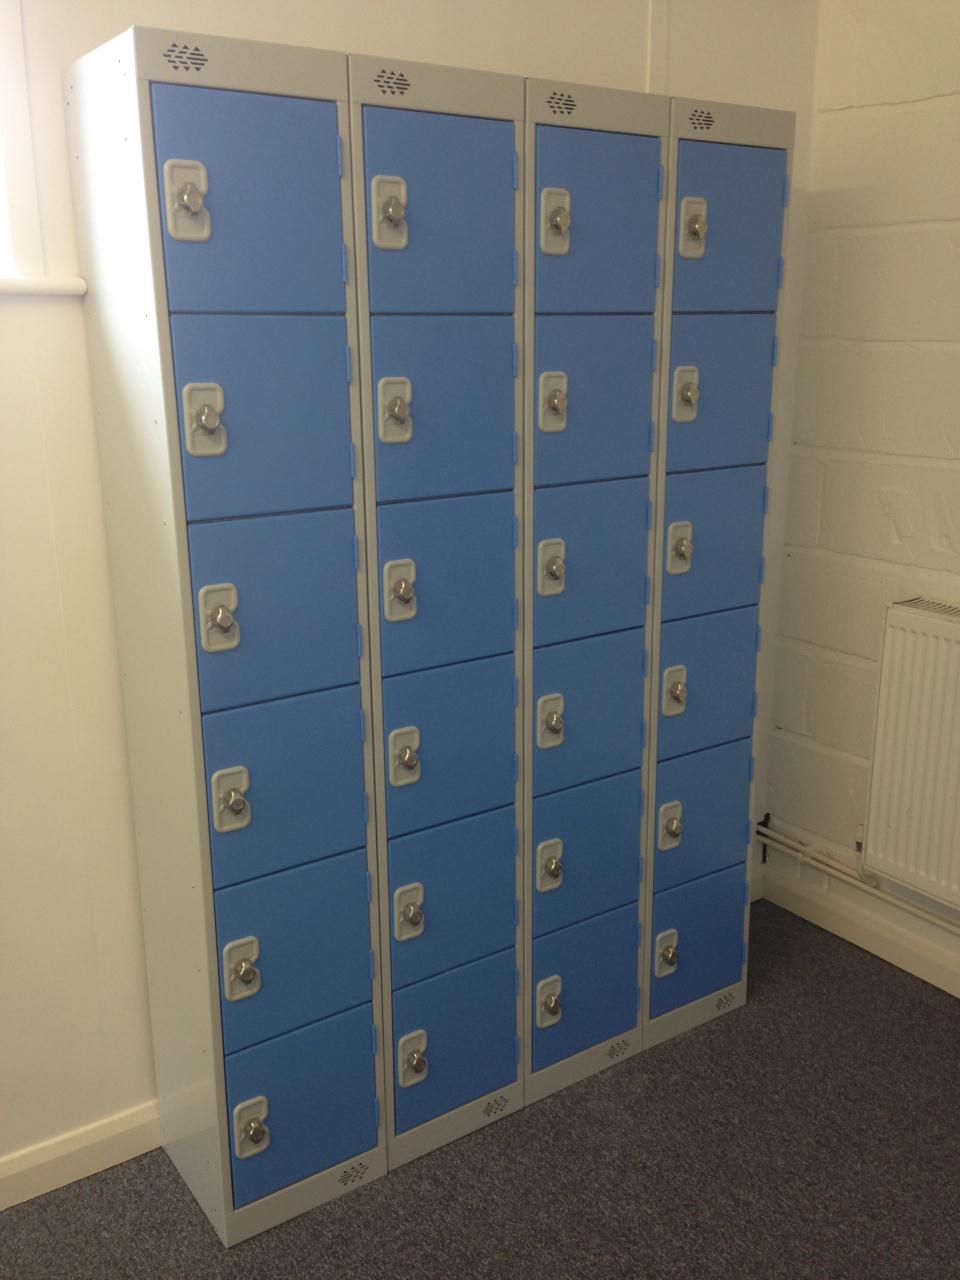 Tolworth Gymnastics Club Powder Blue Lockers